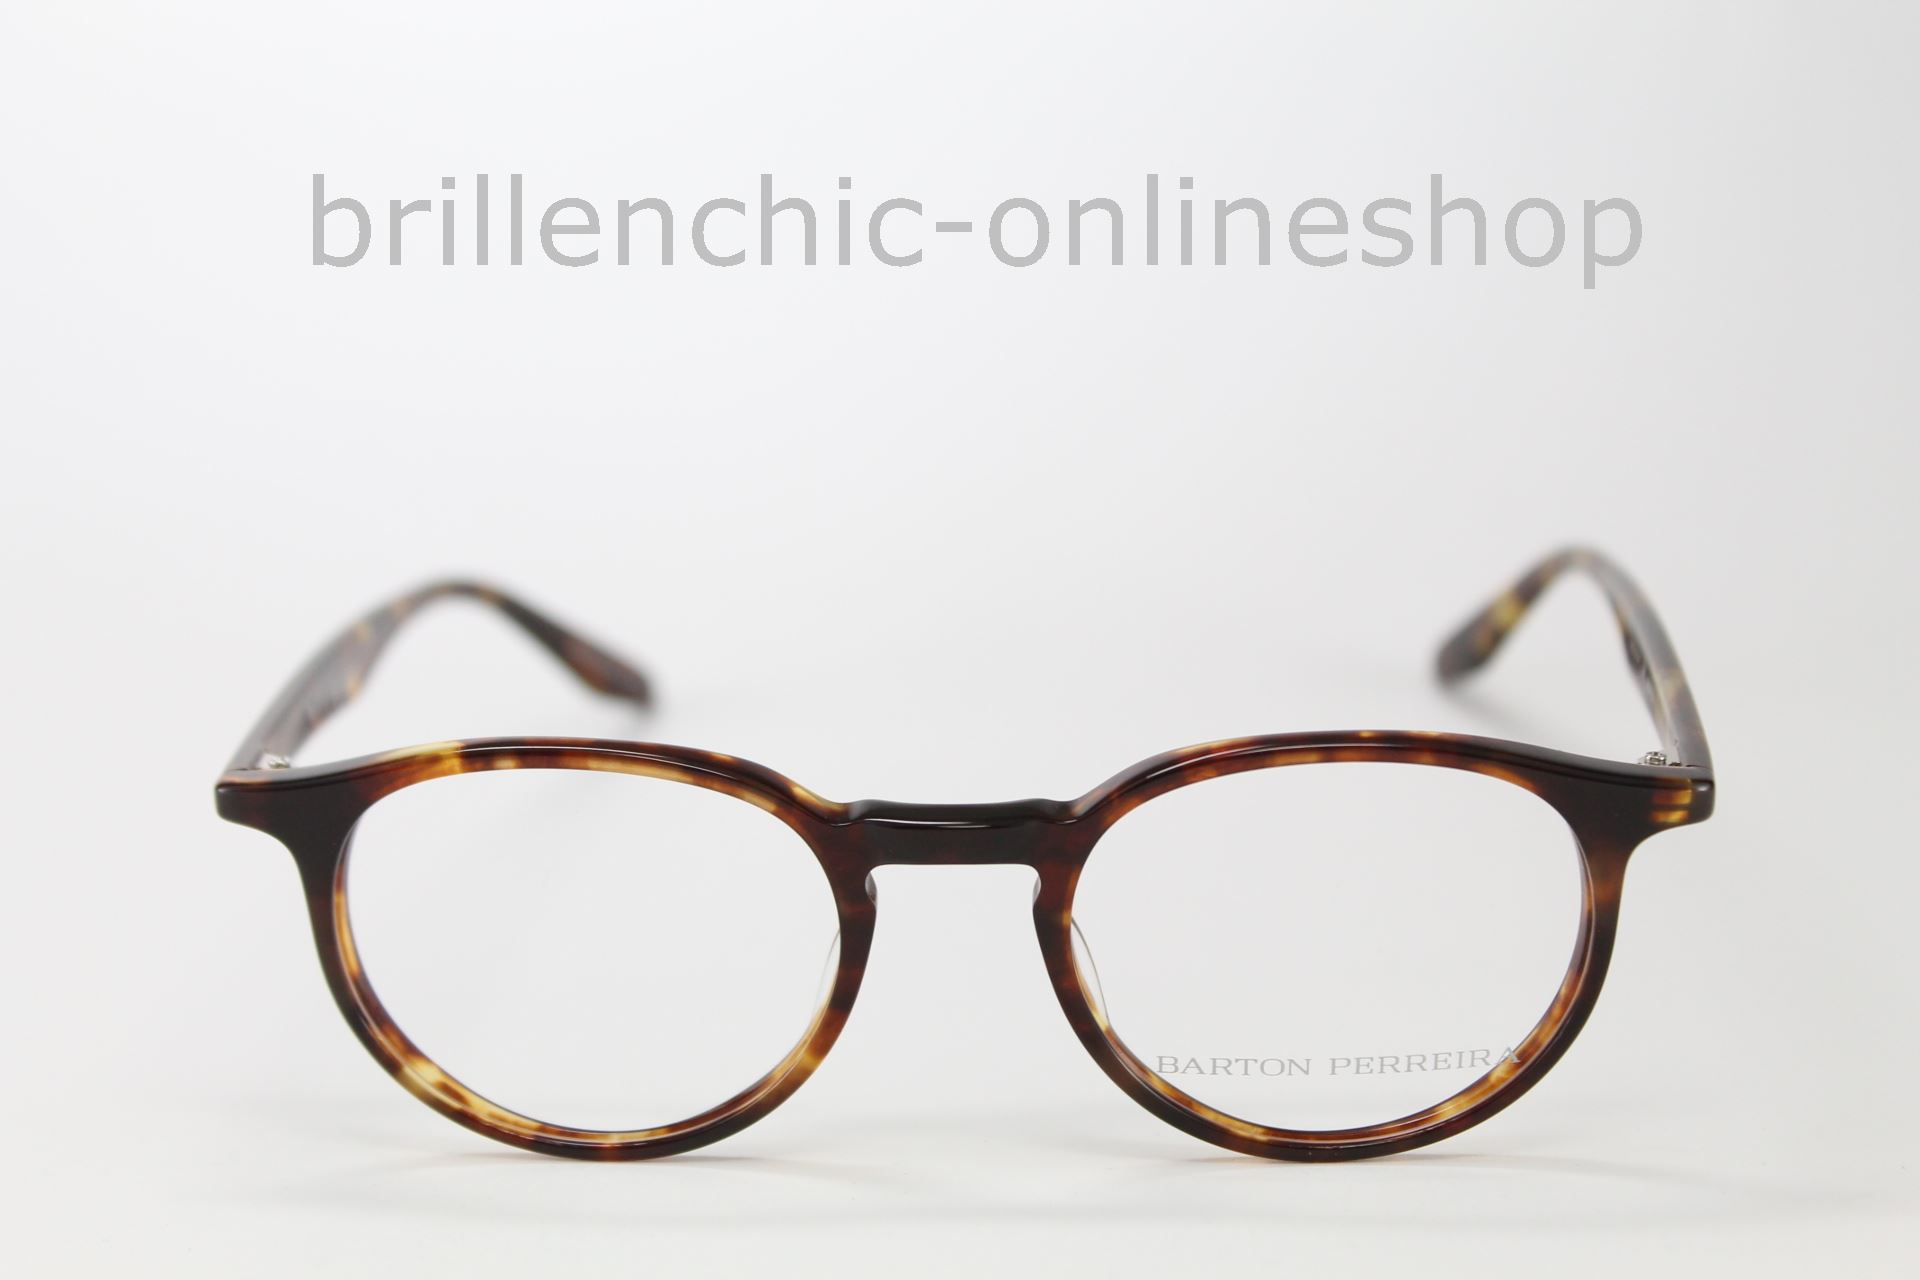 9108283caf8 Barton Perreira Wade designer eyeglasses at FramesEmporium. 110% price  match guarantee.Beloved by military officers and tastemakers alike